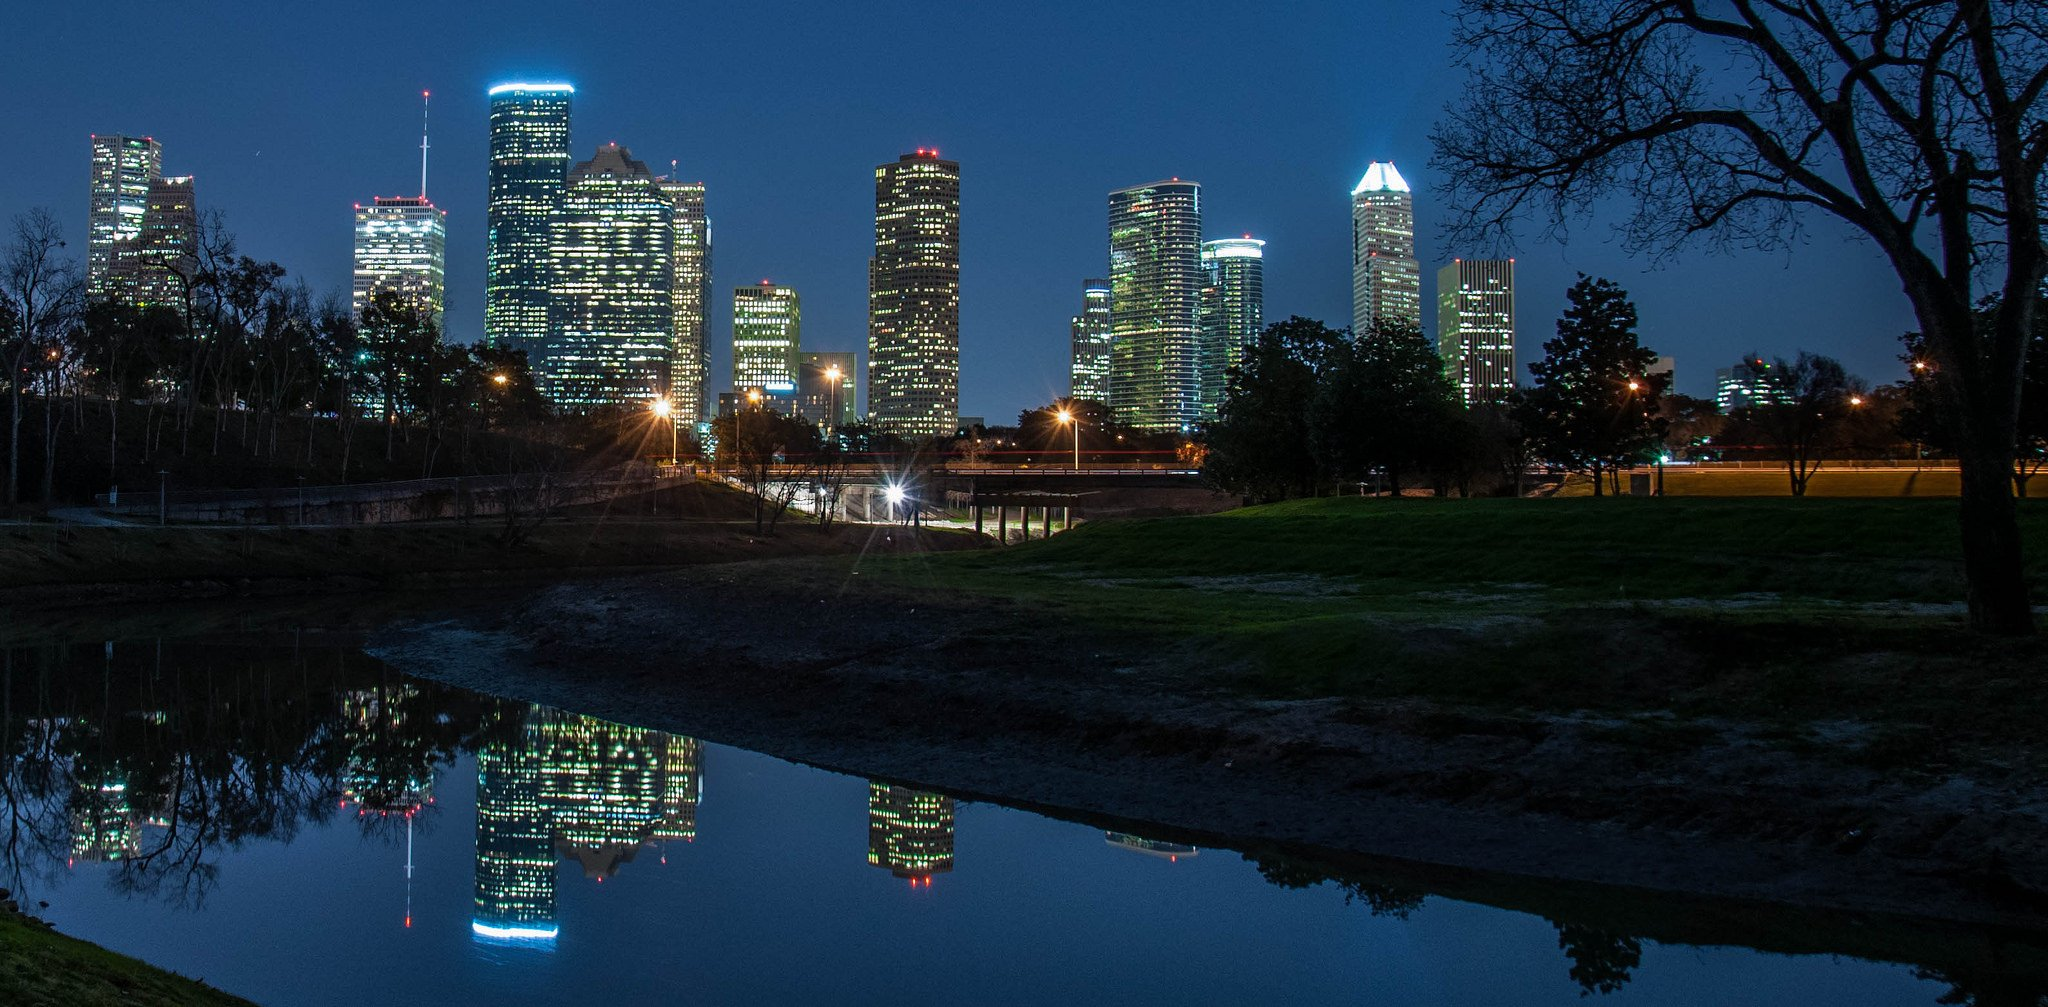 downtown dallas hd wallpapers - photo #41